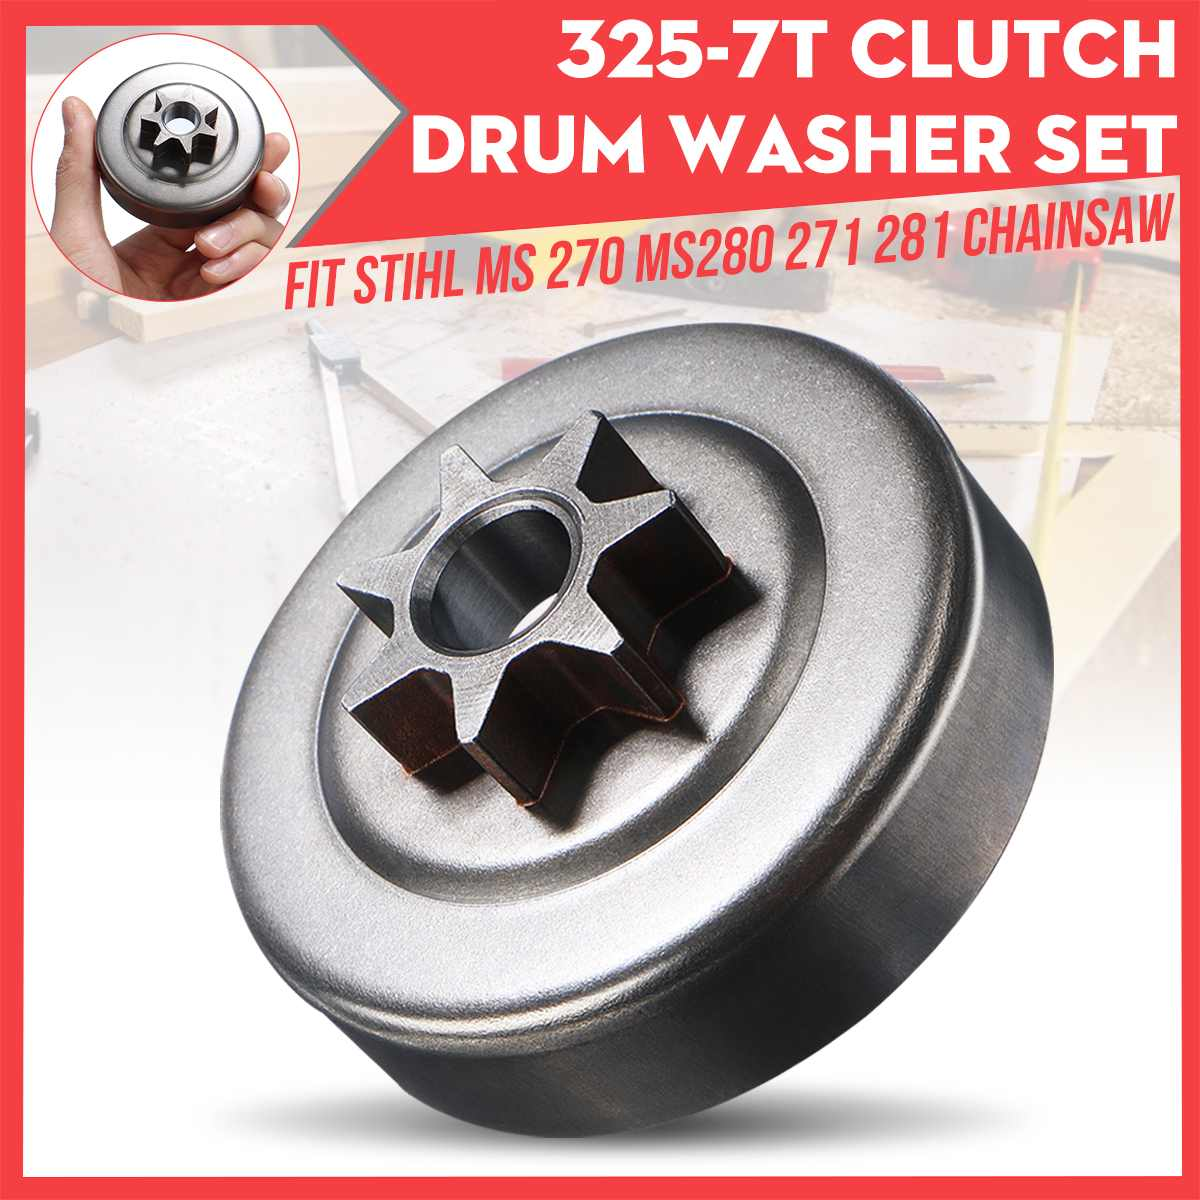 325-7T Clutch Drum Washer Set Fit For Stihl MS 270 MS280 271 281 Chainsaw For Petrol / Gas Power Type